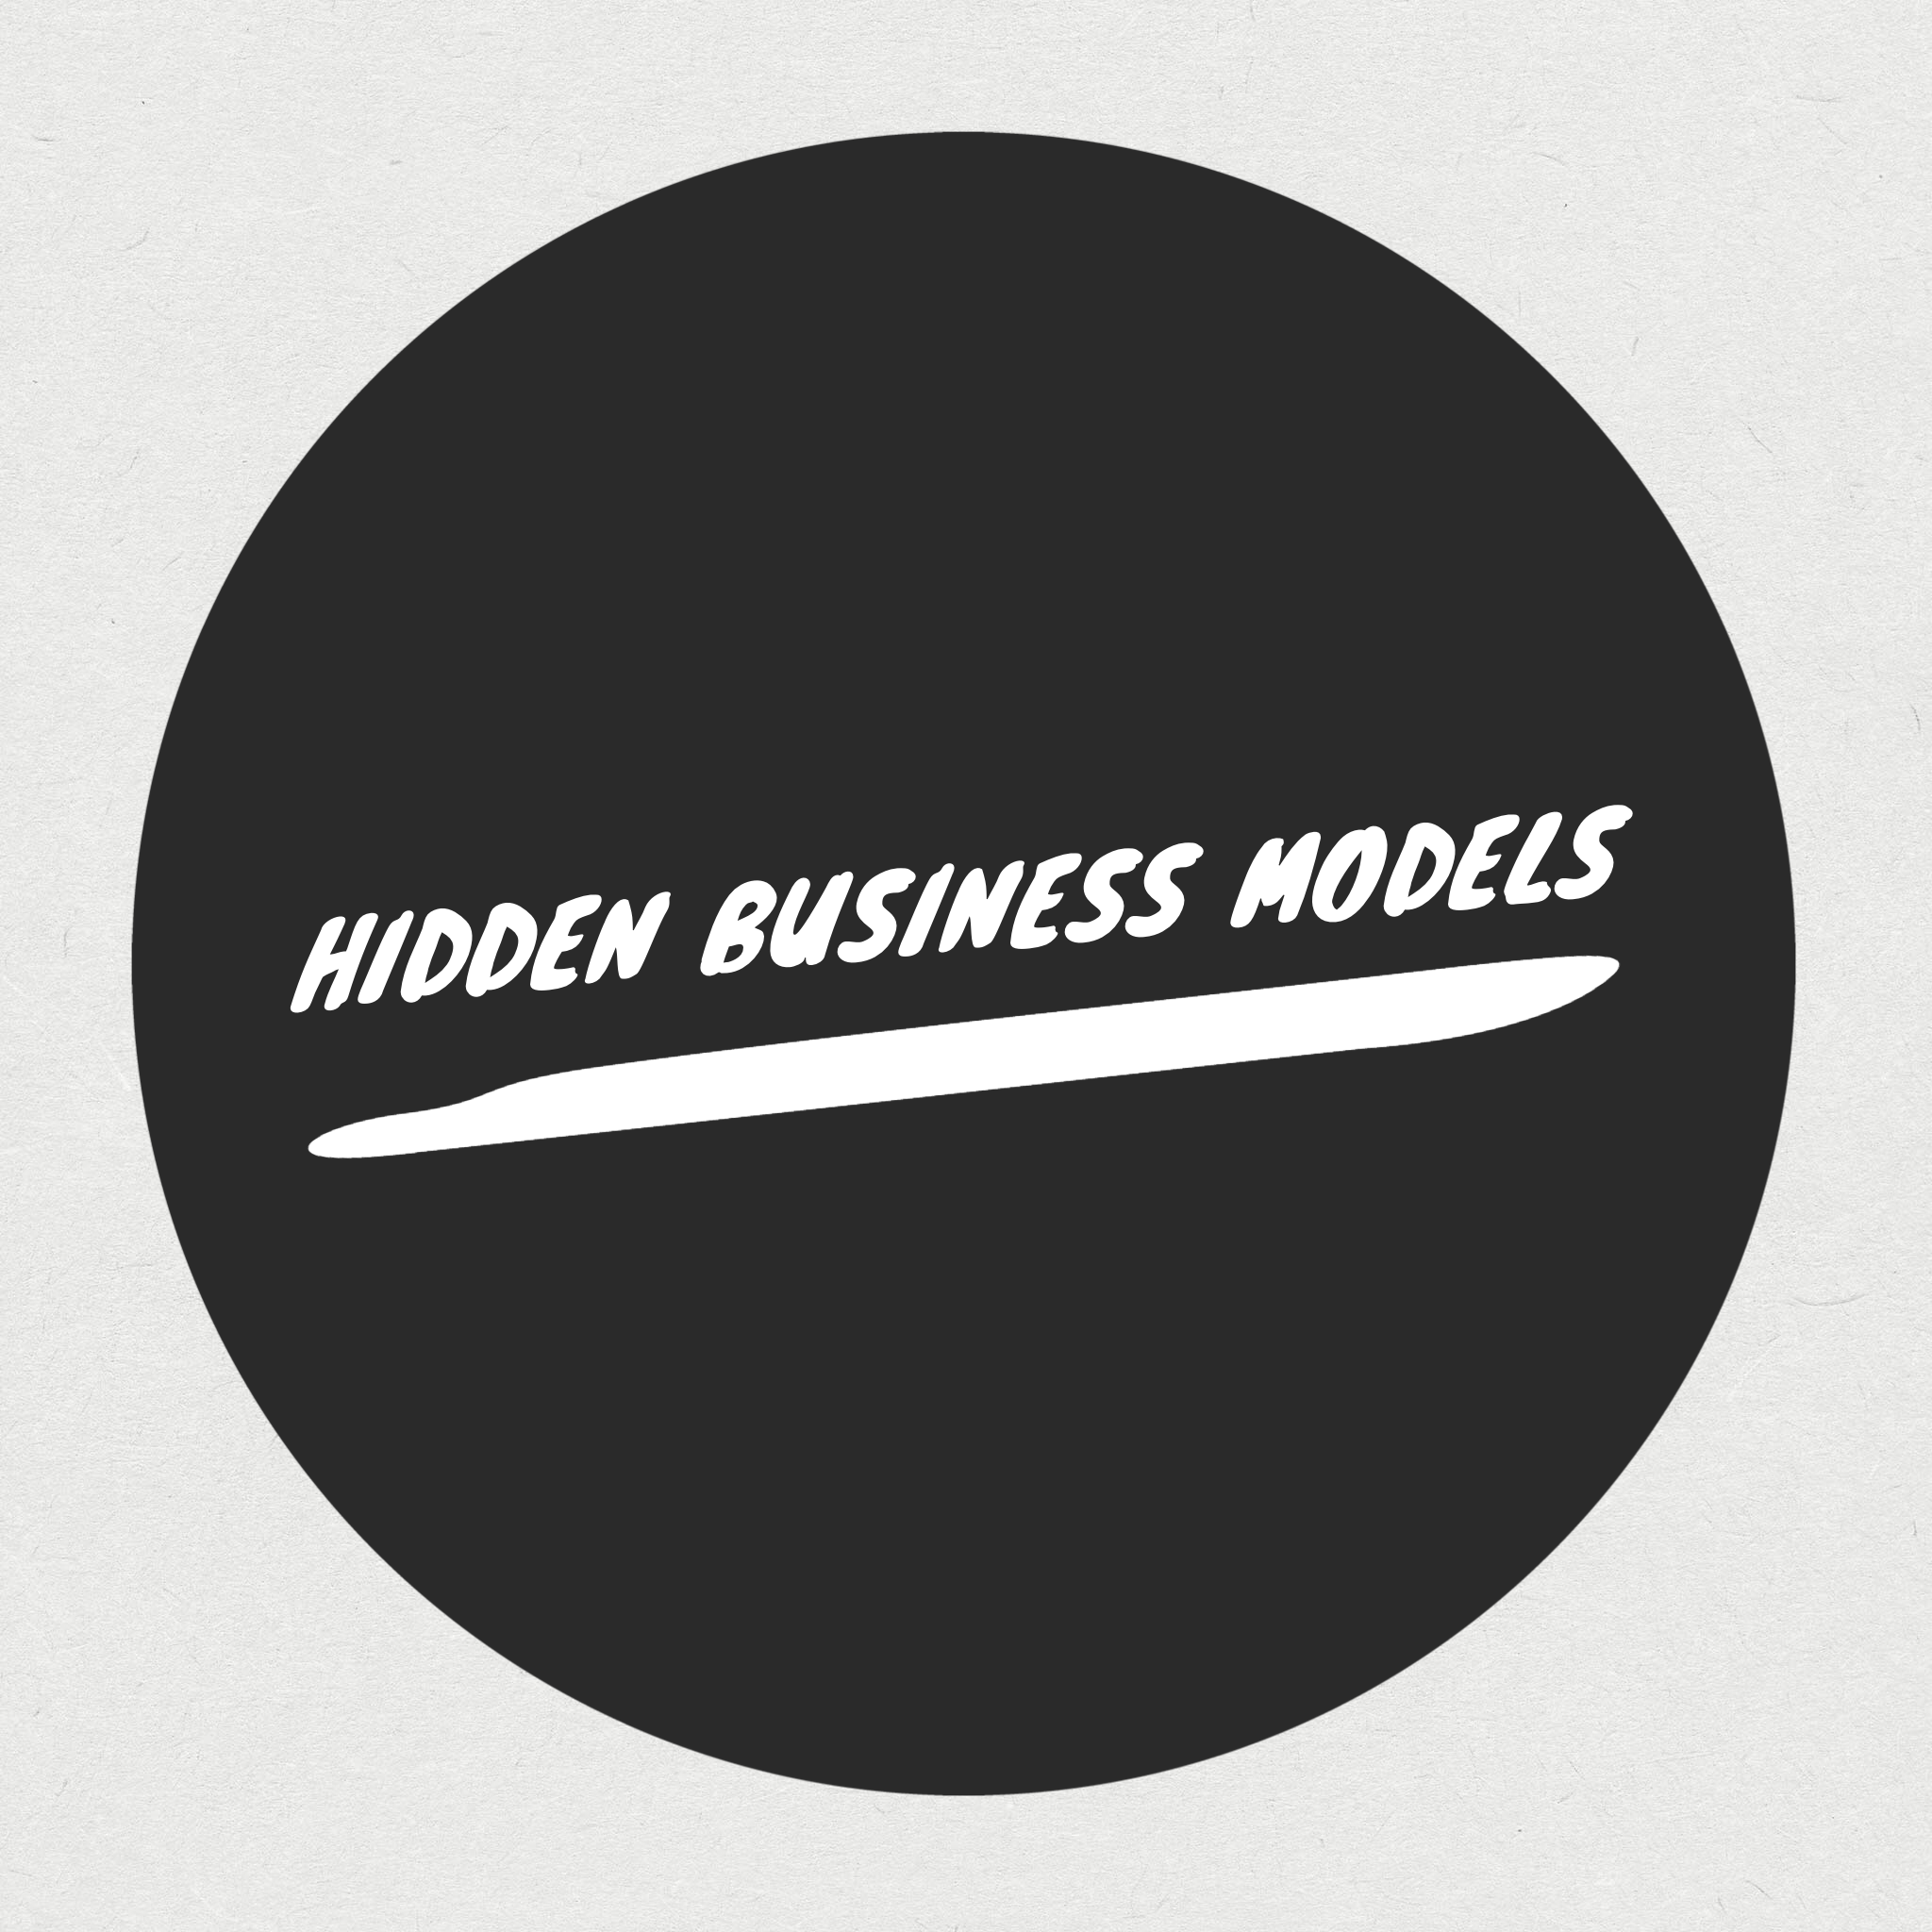 hidden business models